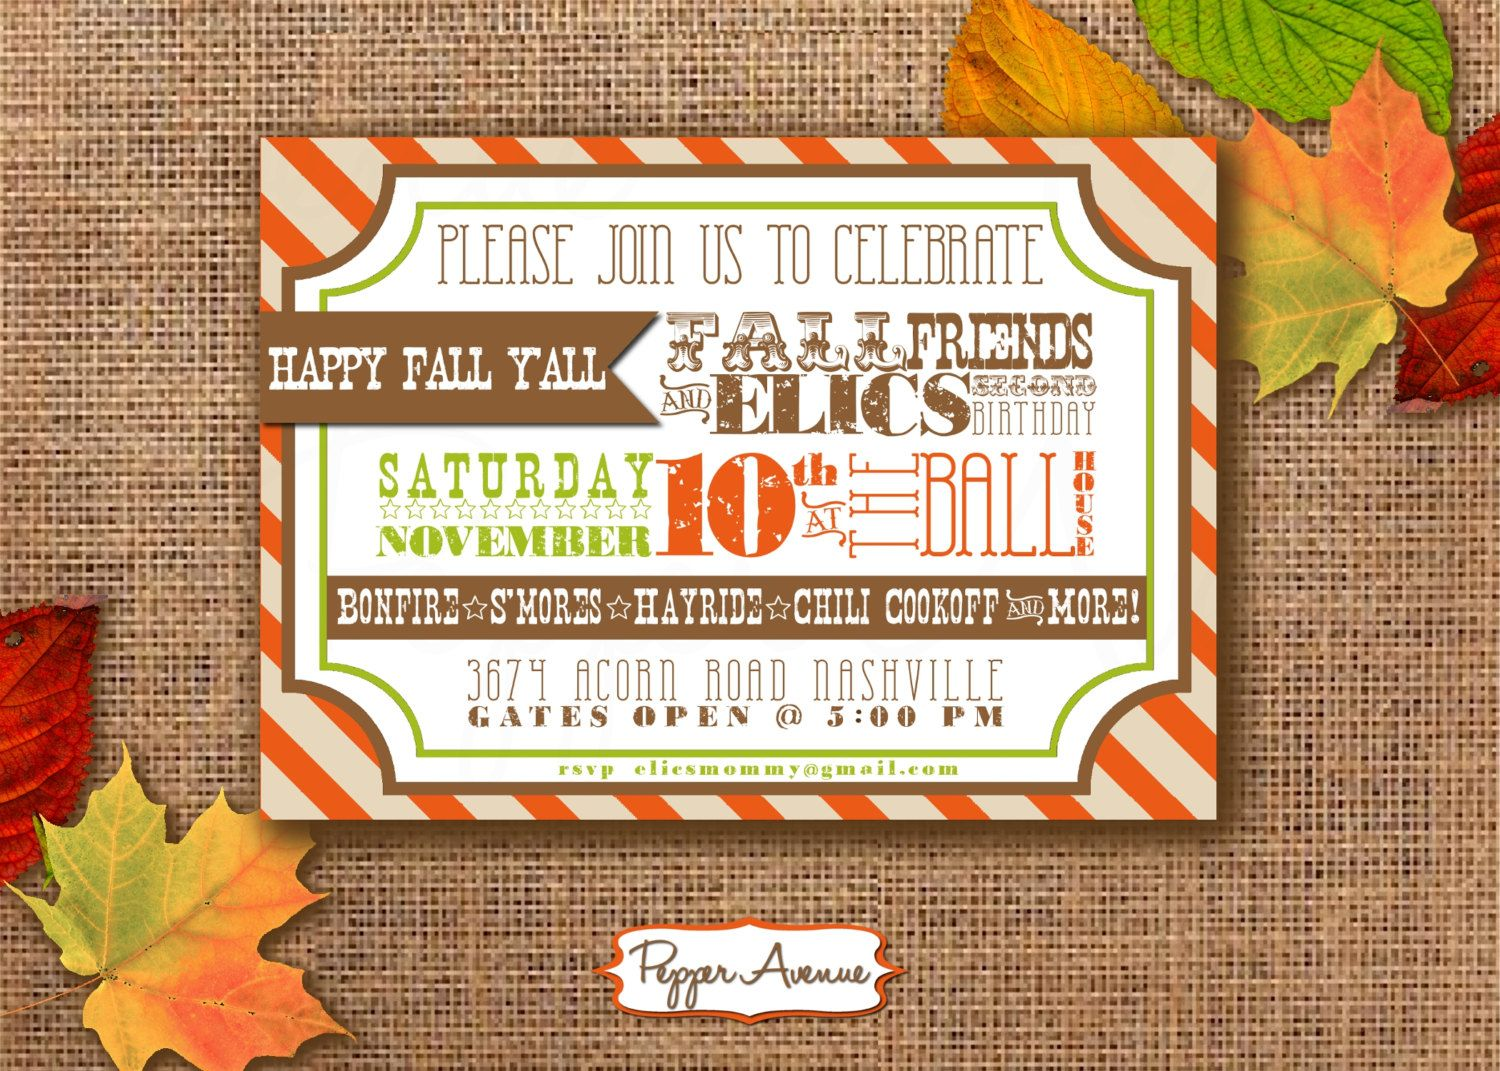 Fall festival party personalized printable pdf invitation pumpkin fall festival party personalized printable pdf invitation pumpkin carving hayride birthday filmwisefo Images